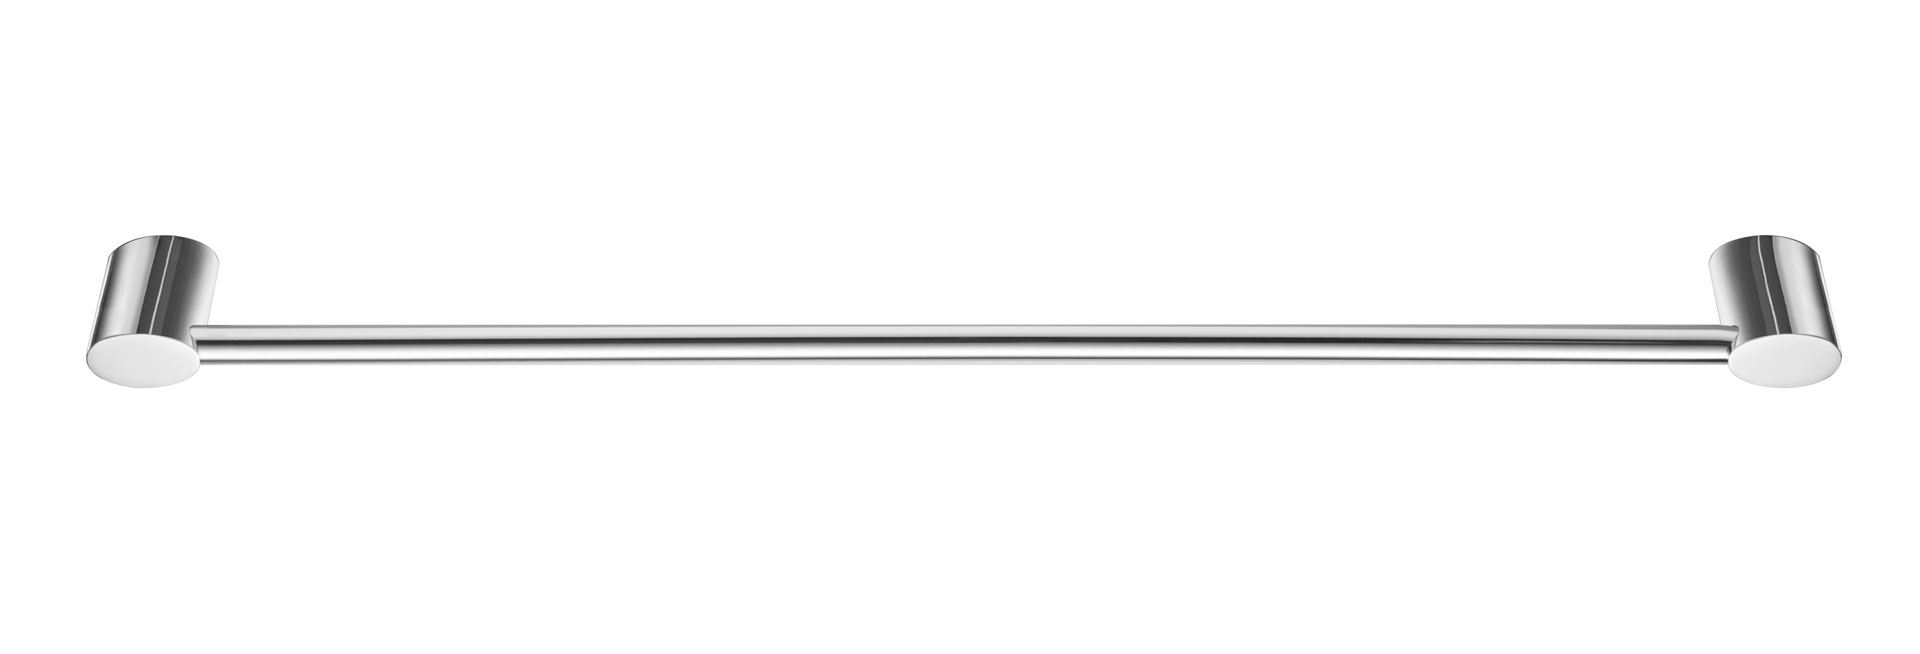 COTTO-Towel-Bar-Curve-model-CT0222-HM.